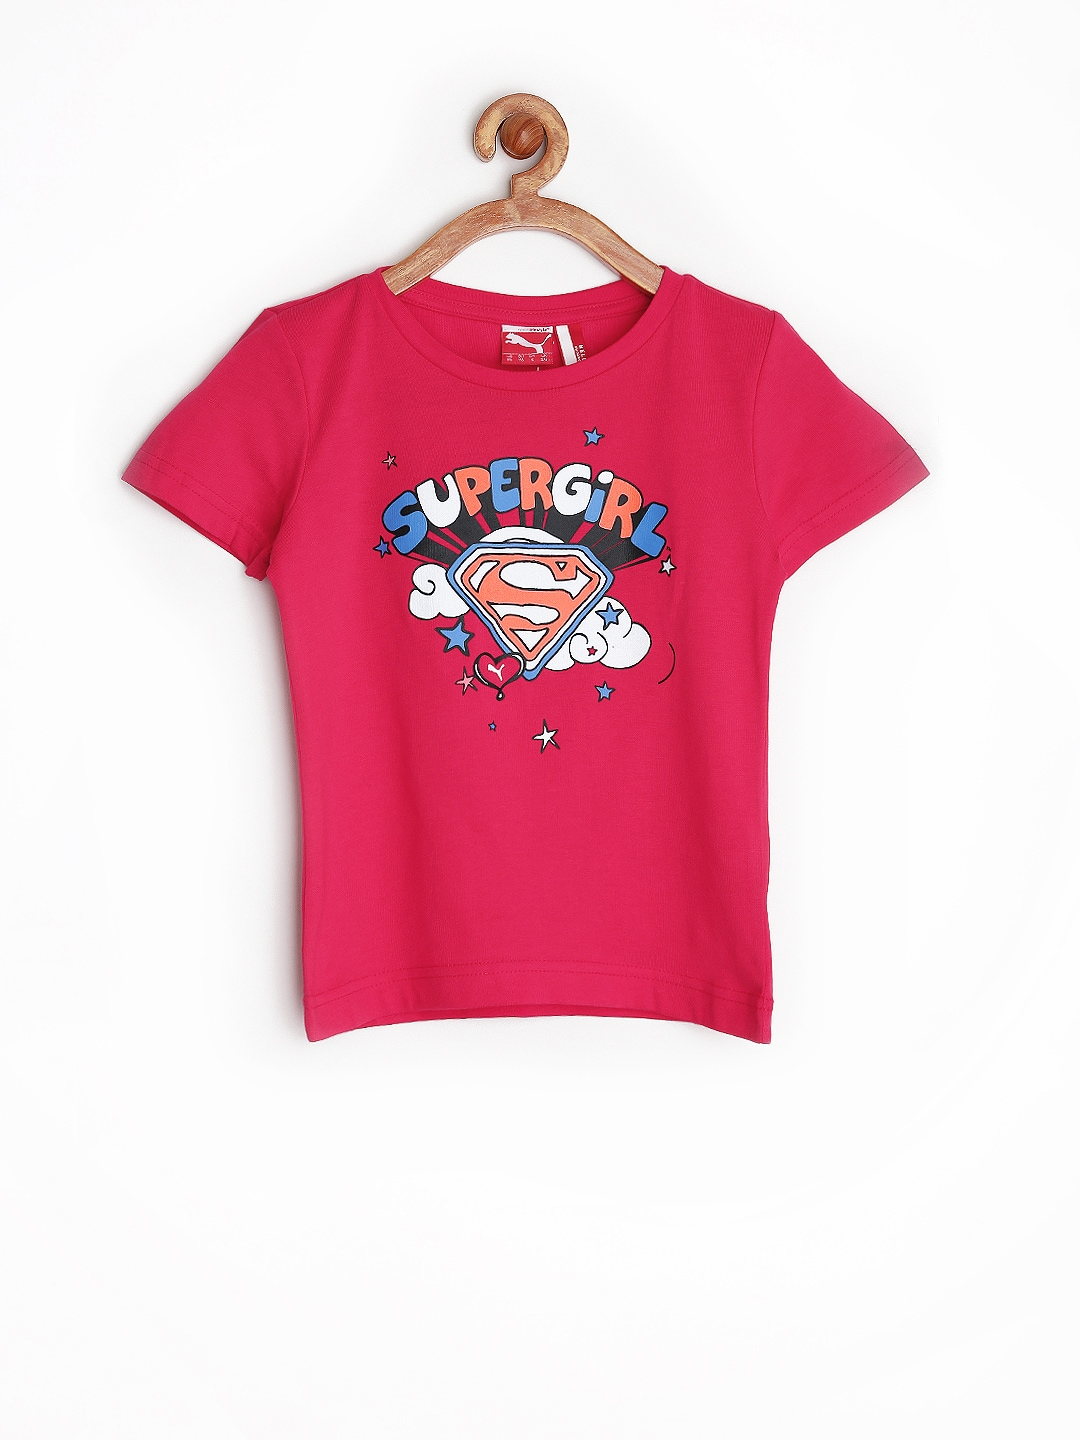 Myntra puma girls pink supergirl printed t shirt 720439 for Shirts online shopping lowest price